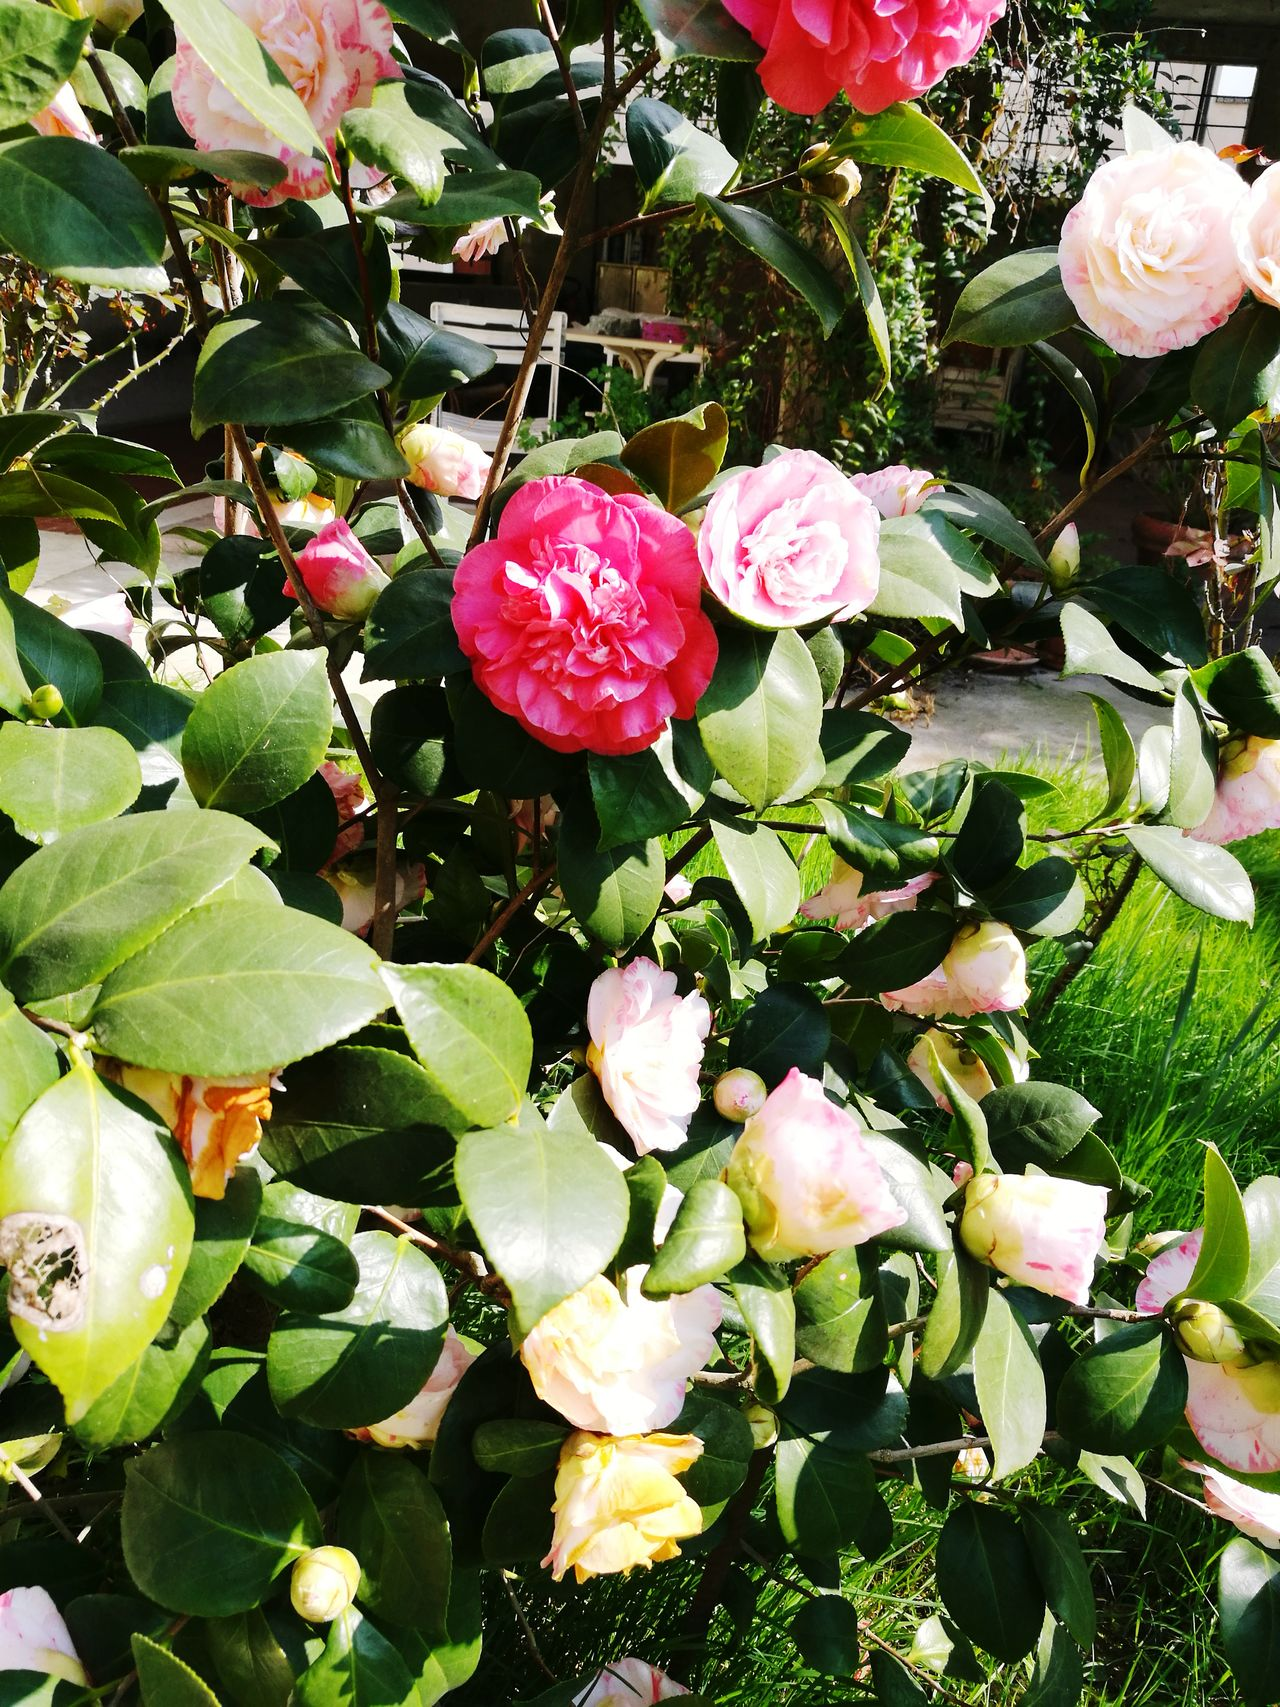 Leaf Growth Freshness Plant Nature Fragility Fruit No People Beauty In Nature Flower Outdoors Green Color Pink Color Close-up Day Flower Head Rose🌹 Roses🌹 Rose - Flower Rose Petals Roses Flowers  Rose Flower Roses Rose♥ Rose Garden